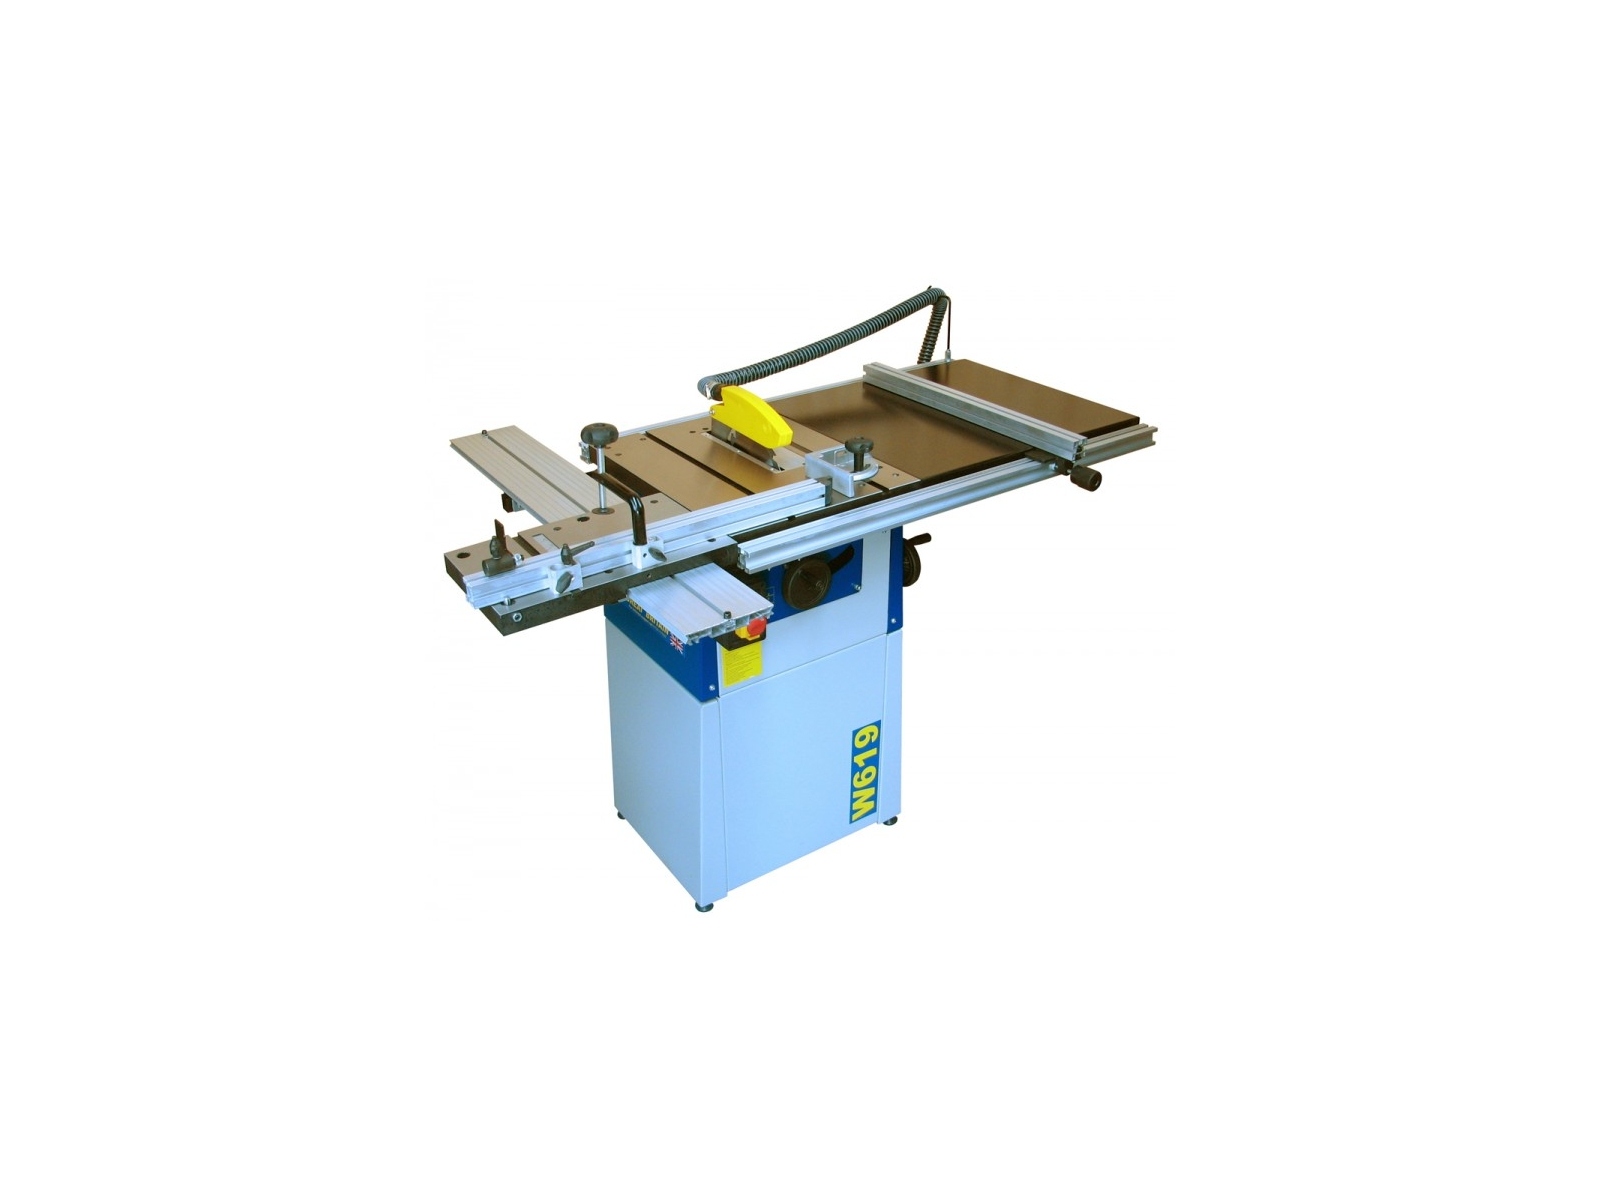 Table saws woodworking machinery table saw cutting timber saws charnwood table saw w619 keyboard keysfo Gallery